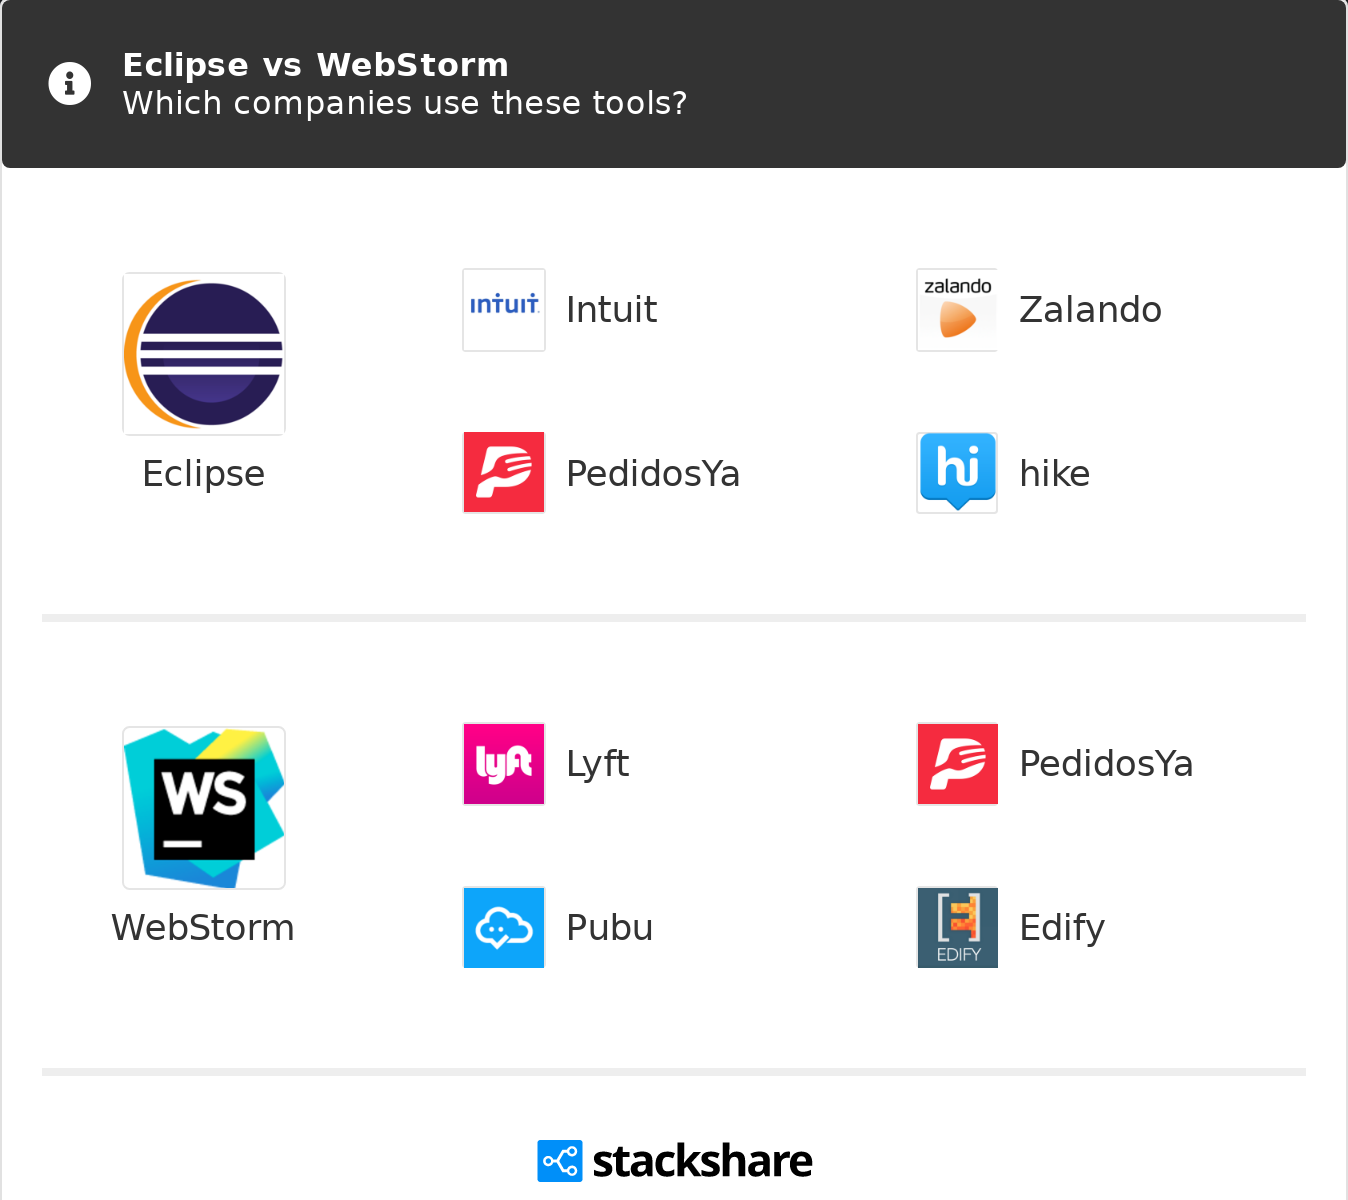 Eclipse vs WebStorm | What are the differences?